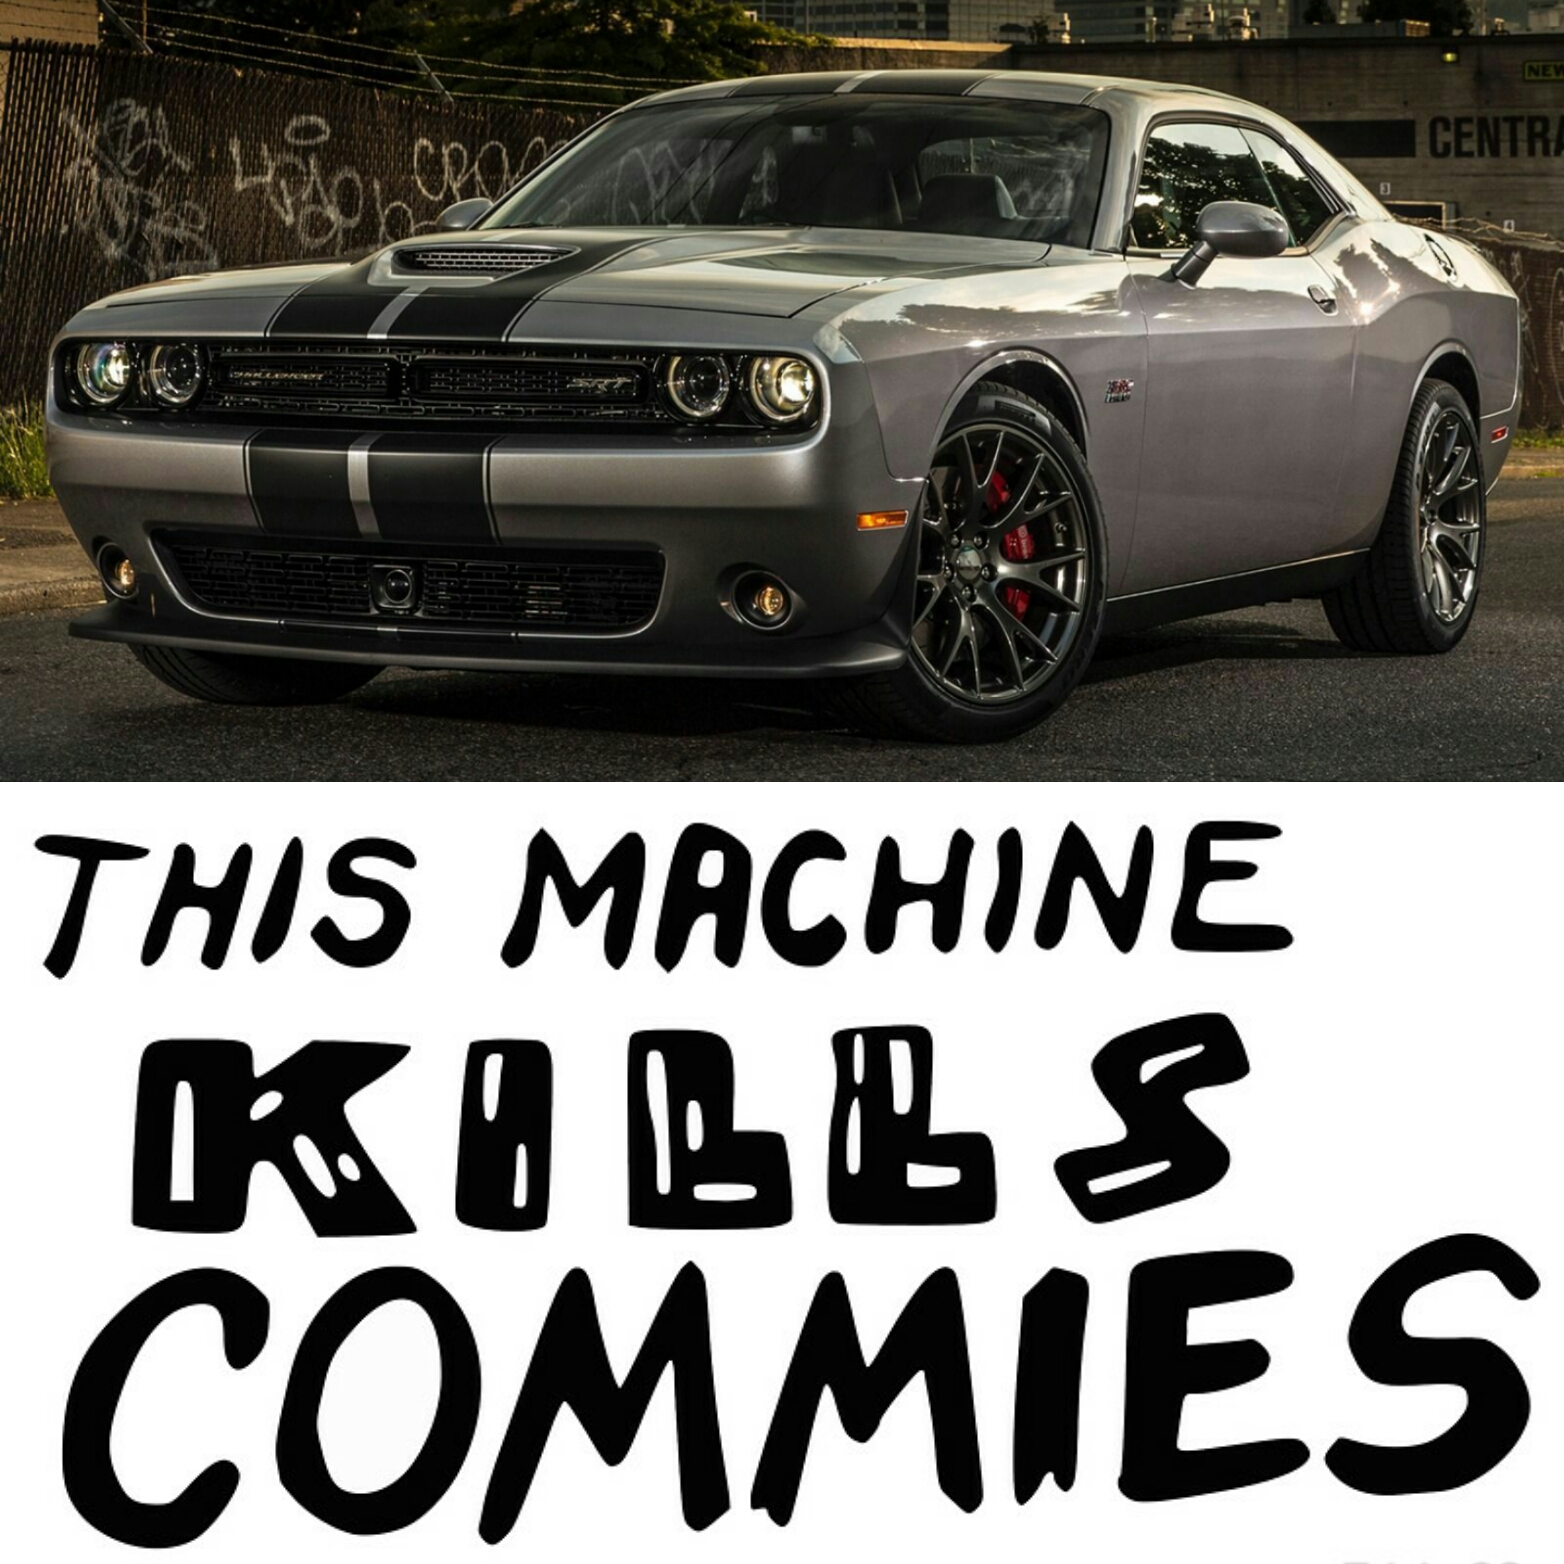 this machine kills commies